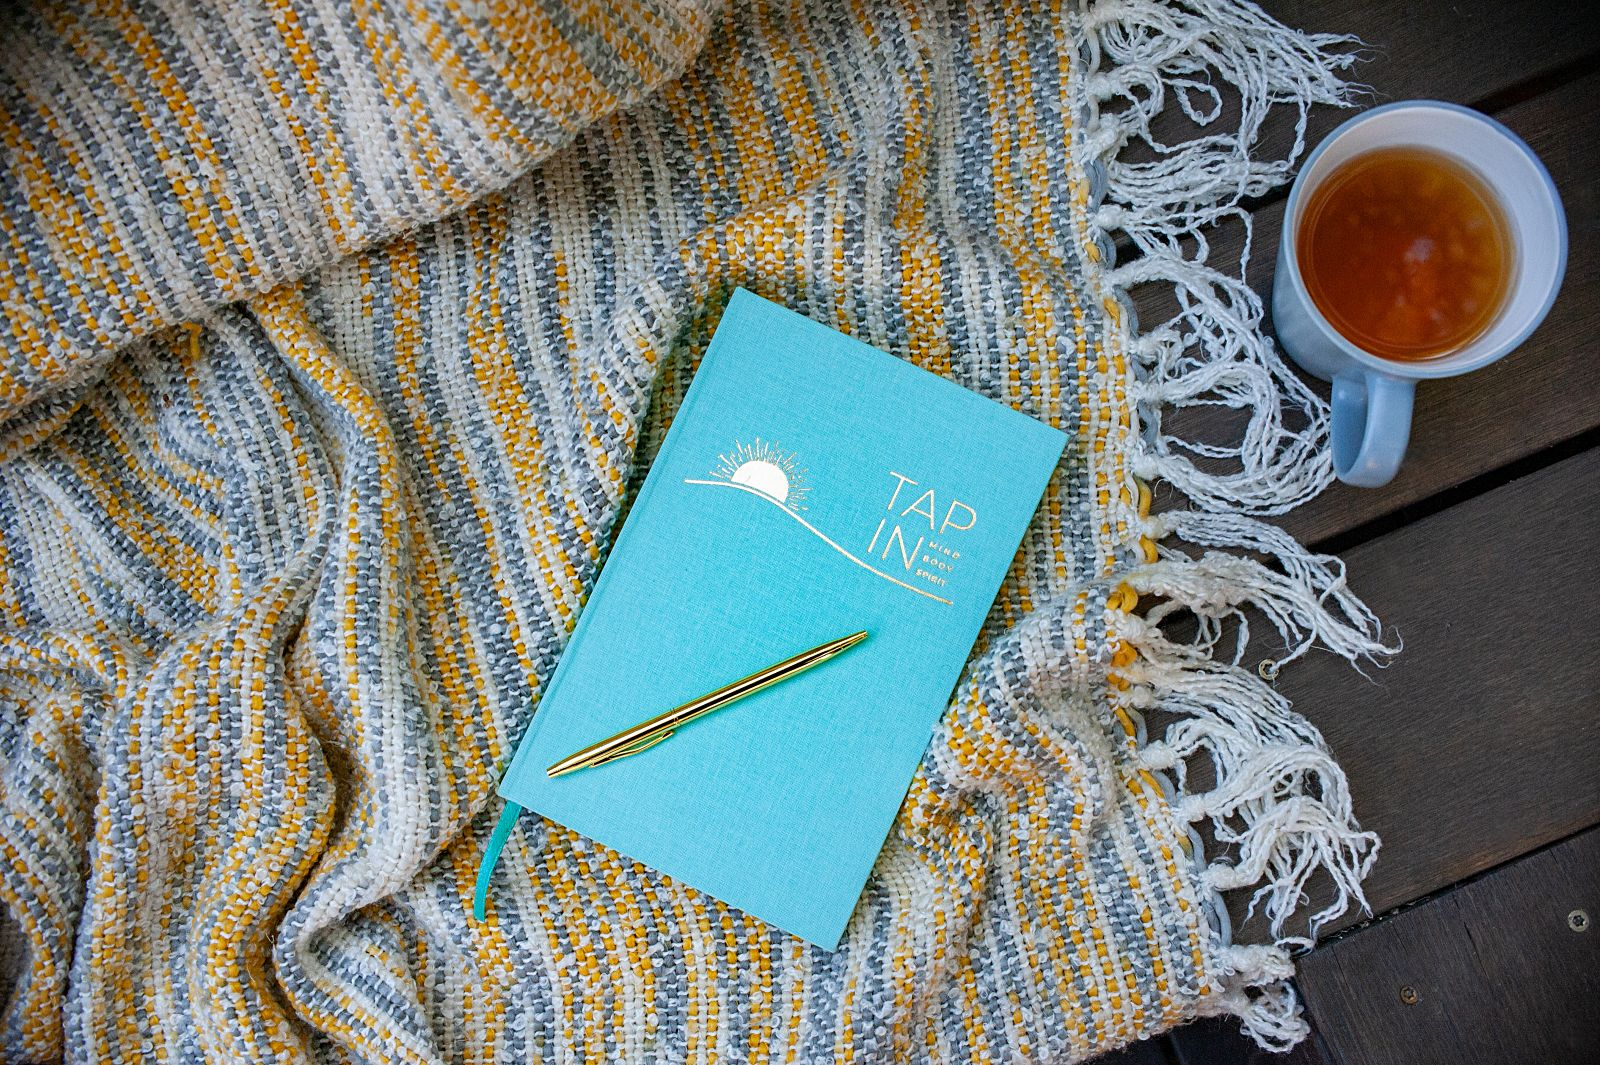 TAP IN wellness journal on a yellow blanket for a wellness retreat